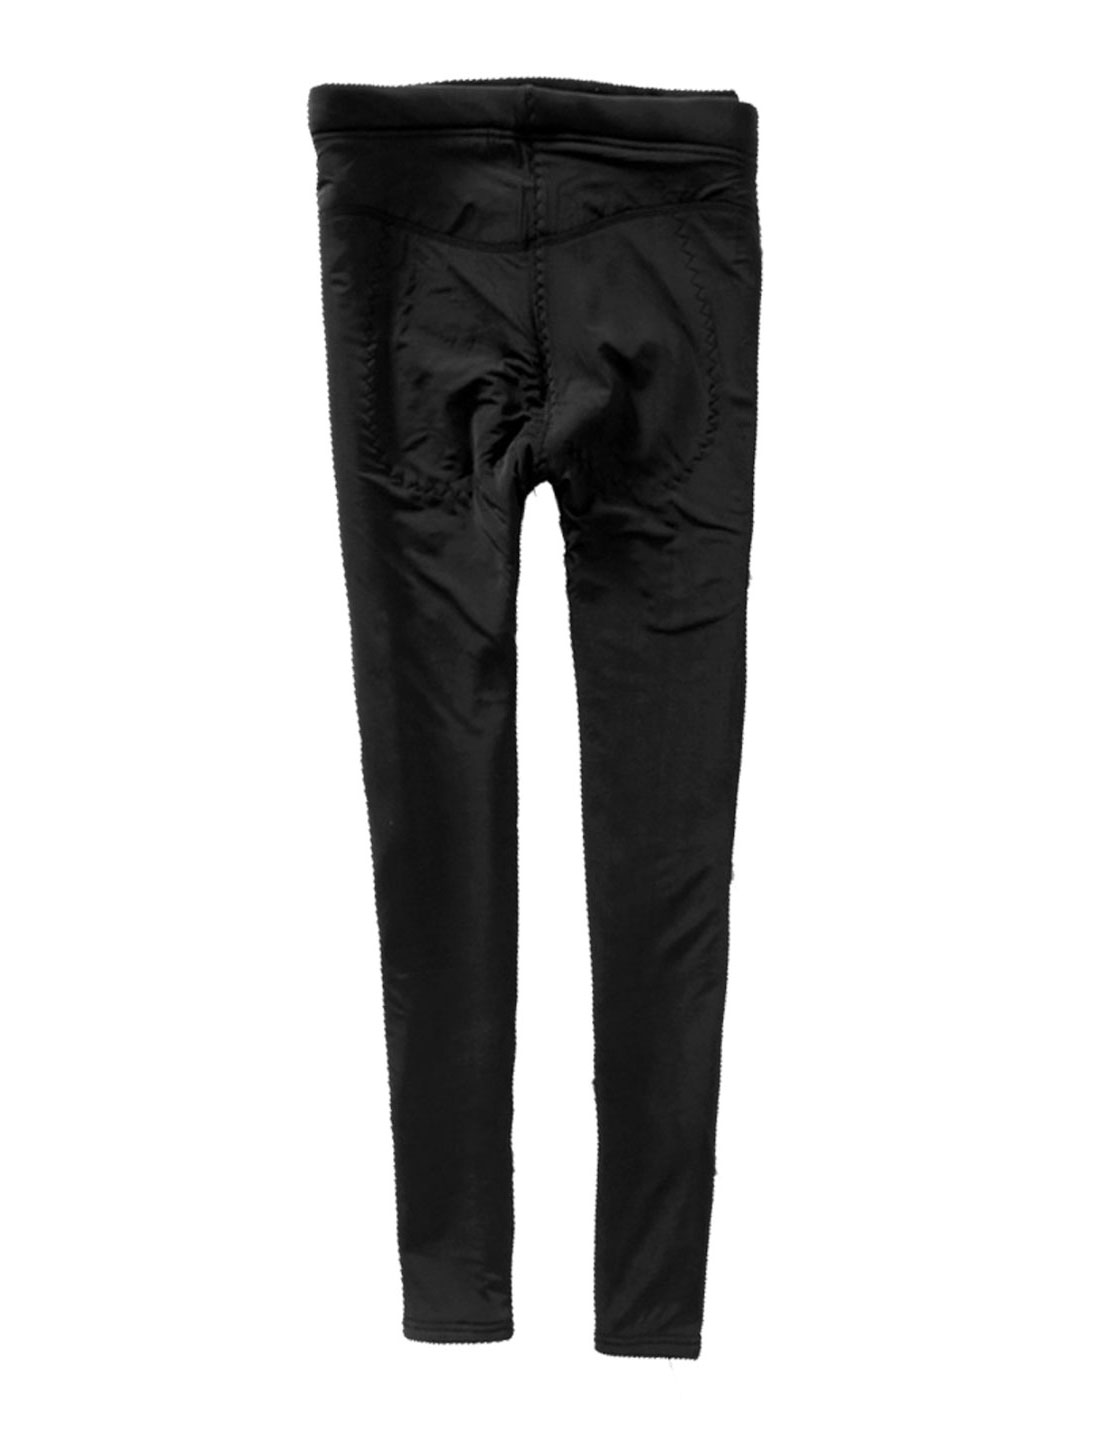 Mathernity Drawstring Button Adjust Waist Fleece Lining Black Leggings M